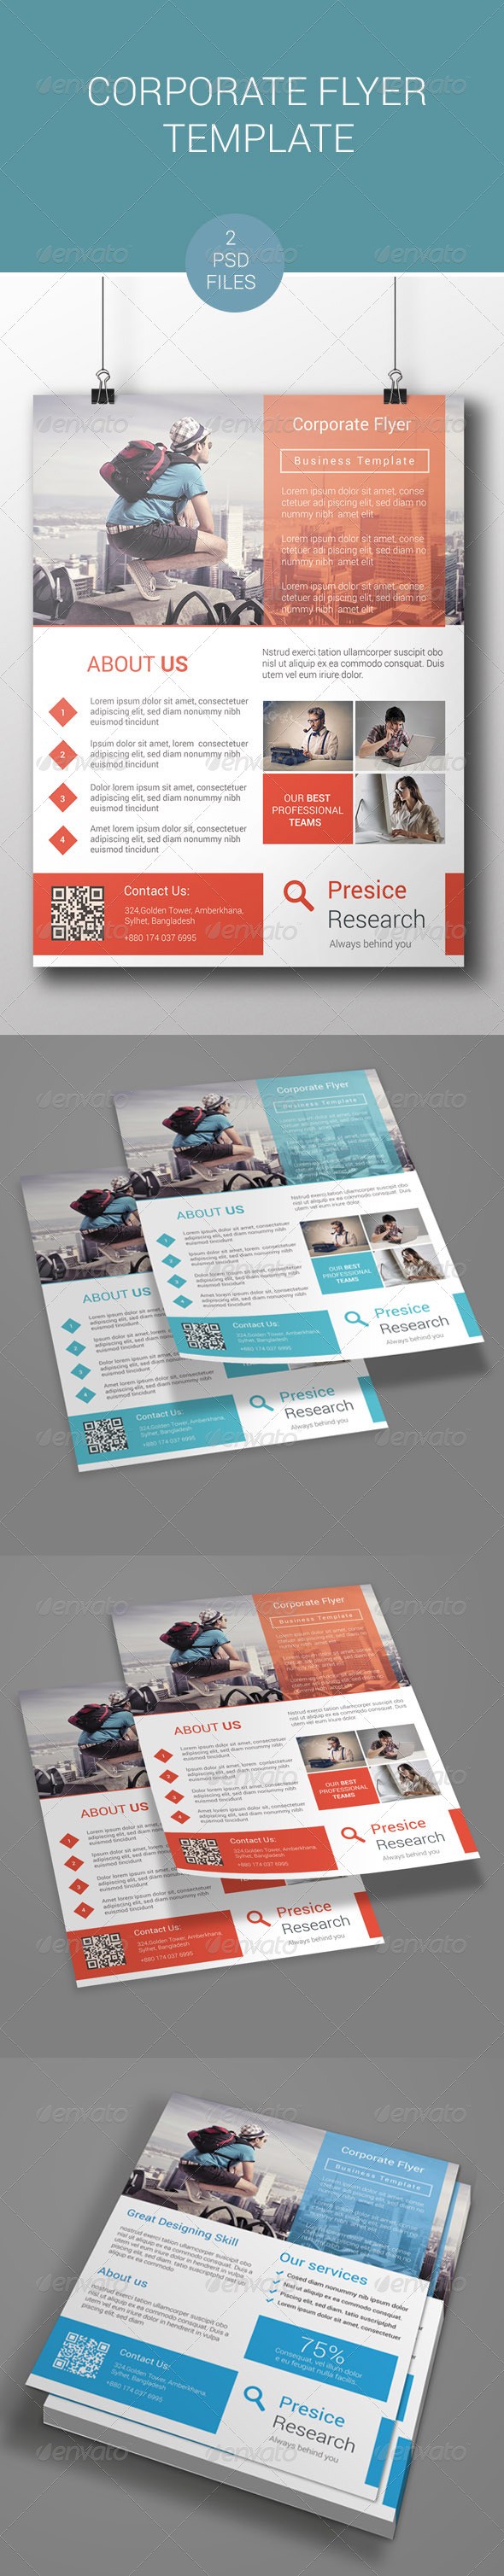 GraphicRiver Corporate Flyer Template 7666978